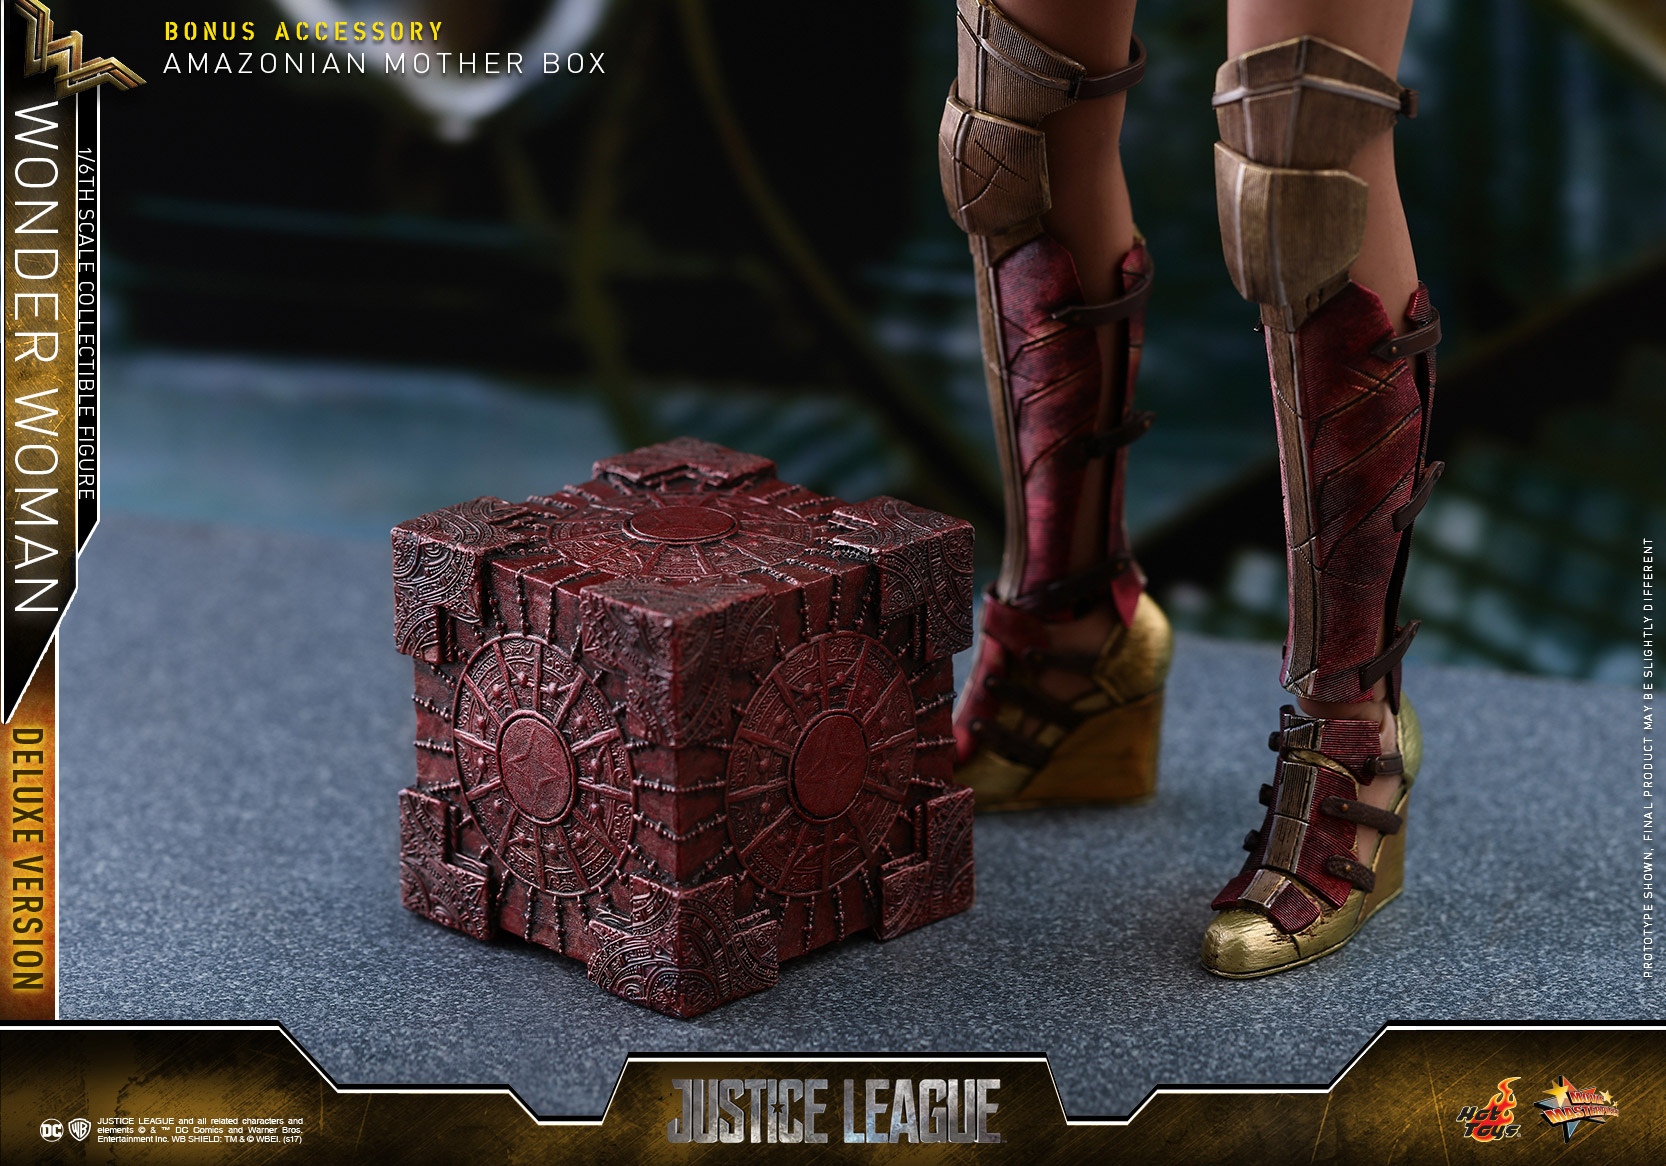 Hot-Toys-Justice-League-Wonder-Woman-collectible-figure-Deluxe_PR-25.jpg